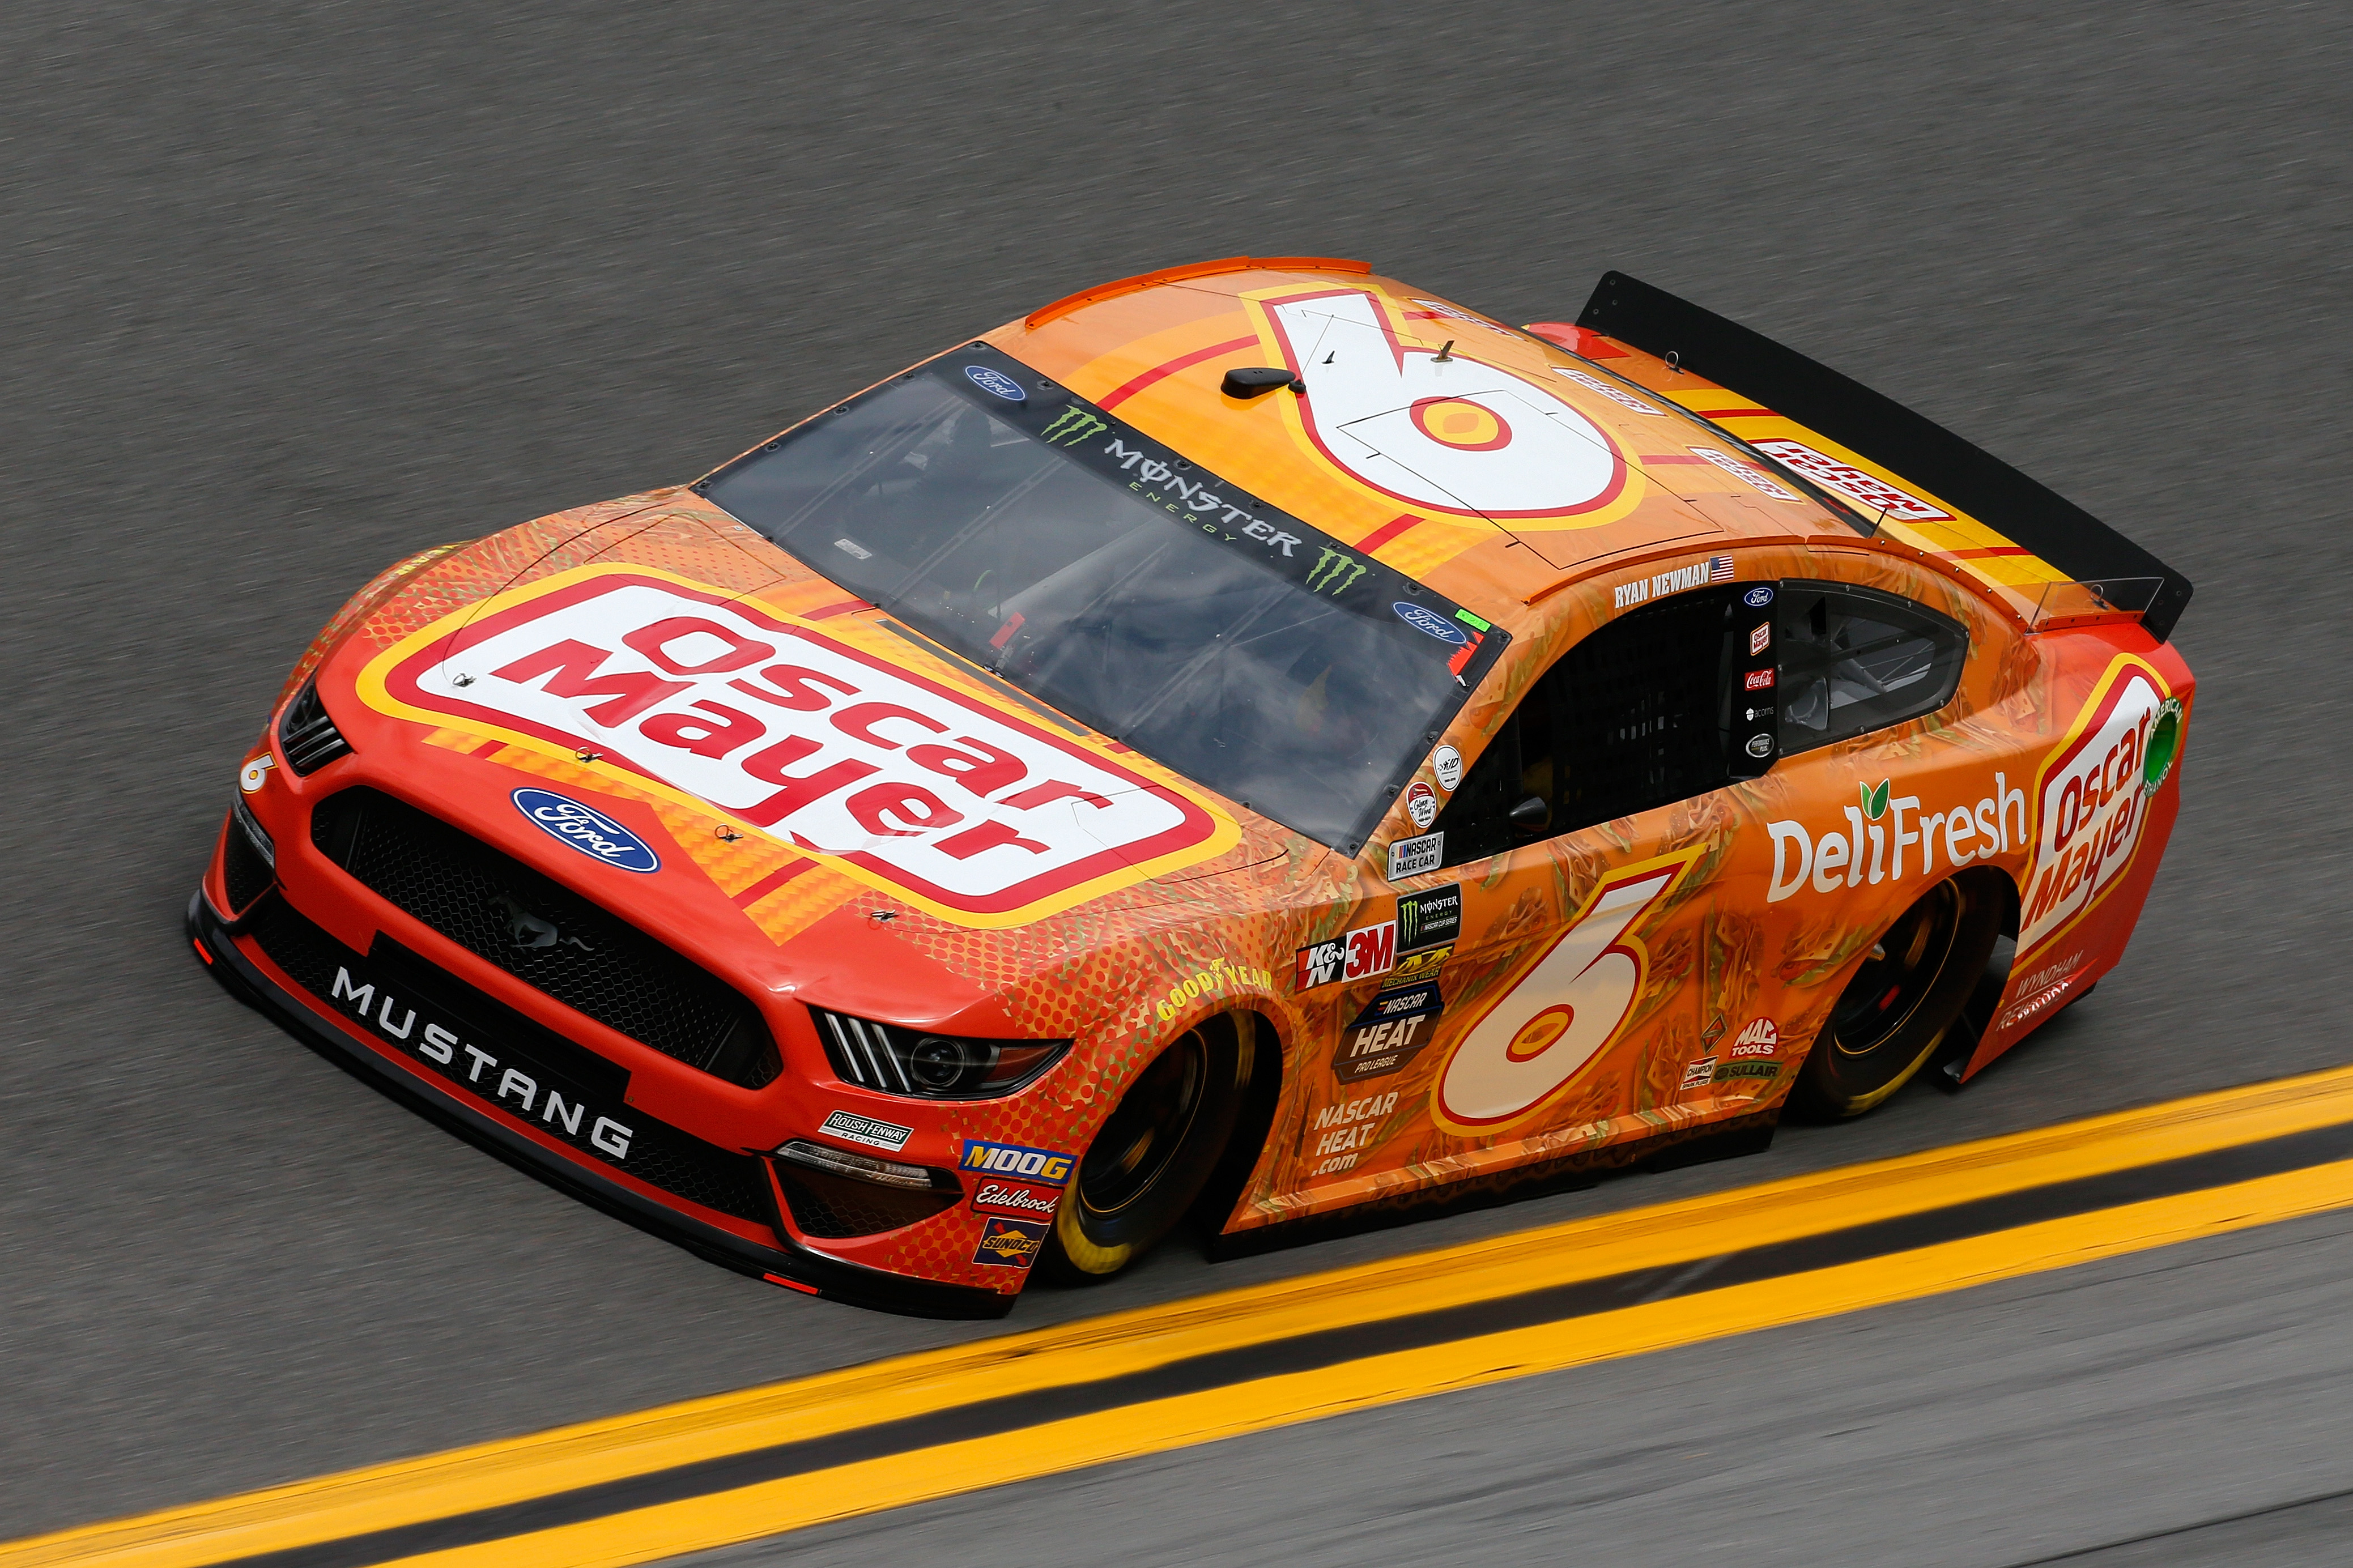 Roush Fenway Racing driver Ryan Newman driving during practice for the Monster Energy NASCAR Cup Series 61st Annual Daytona 500